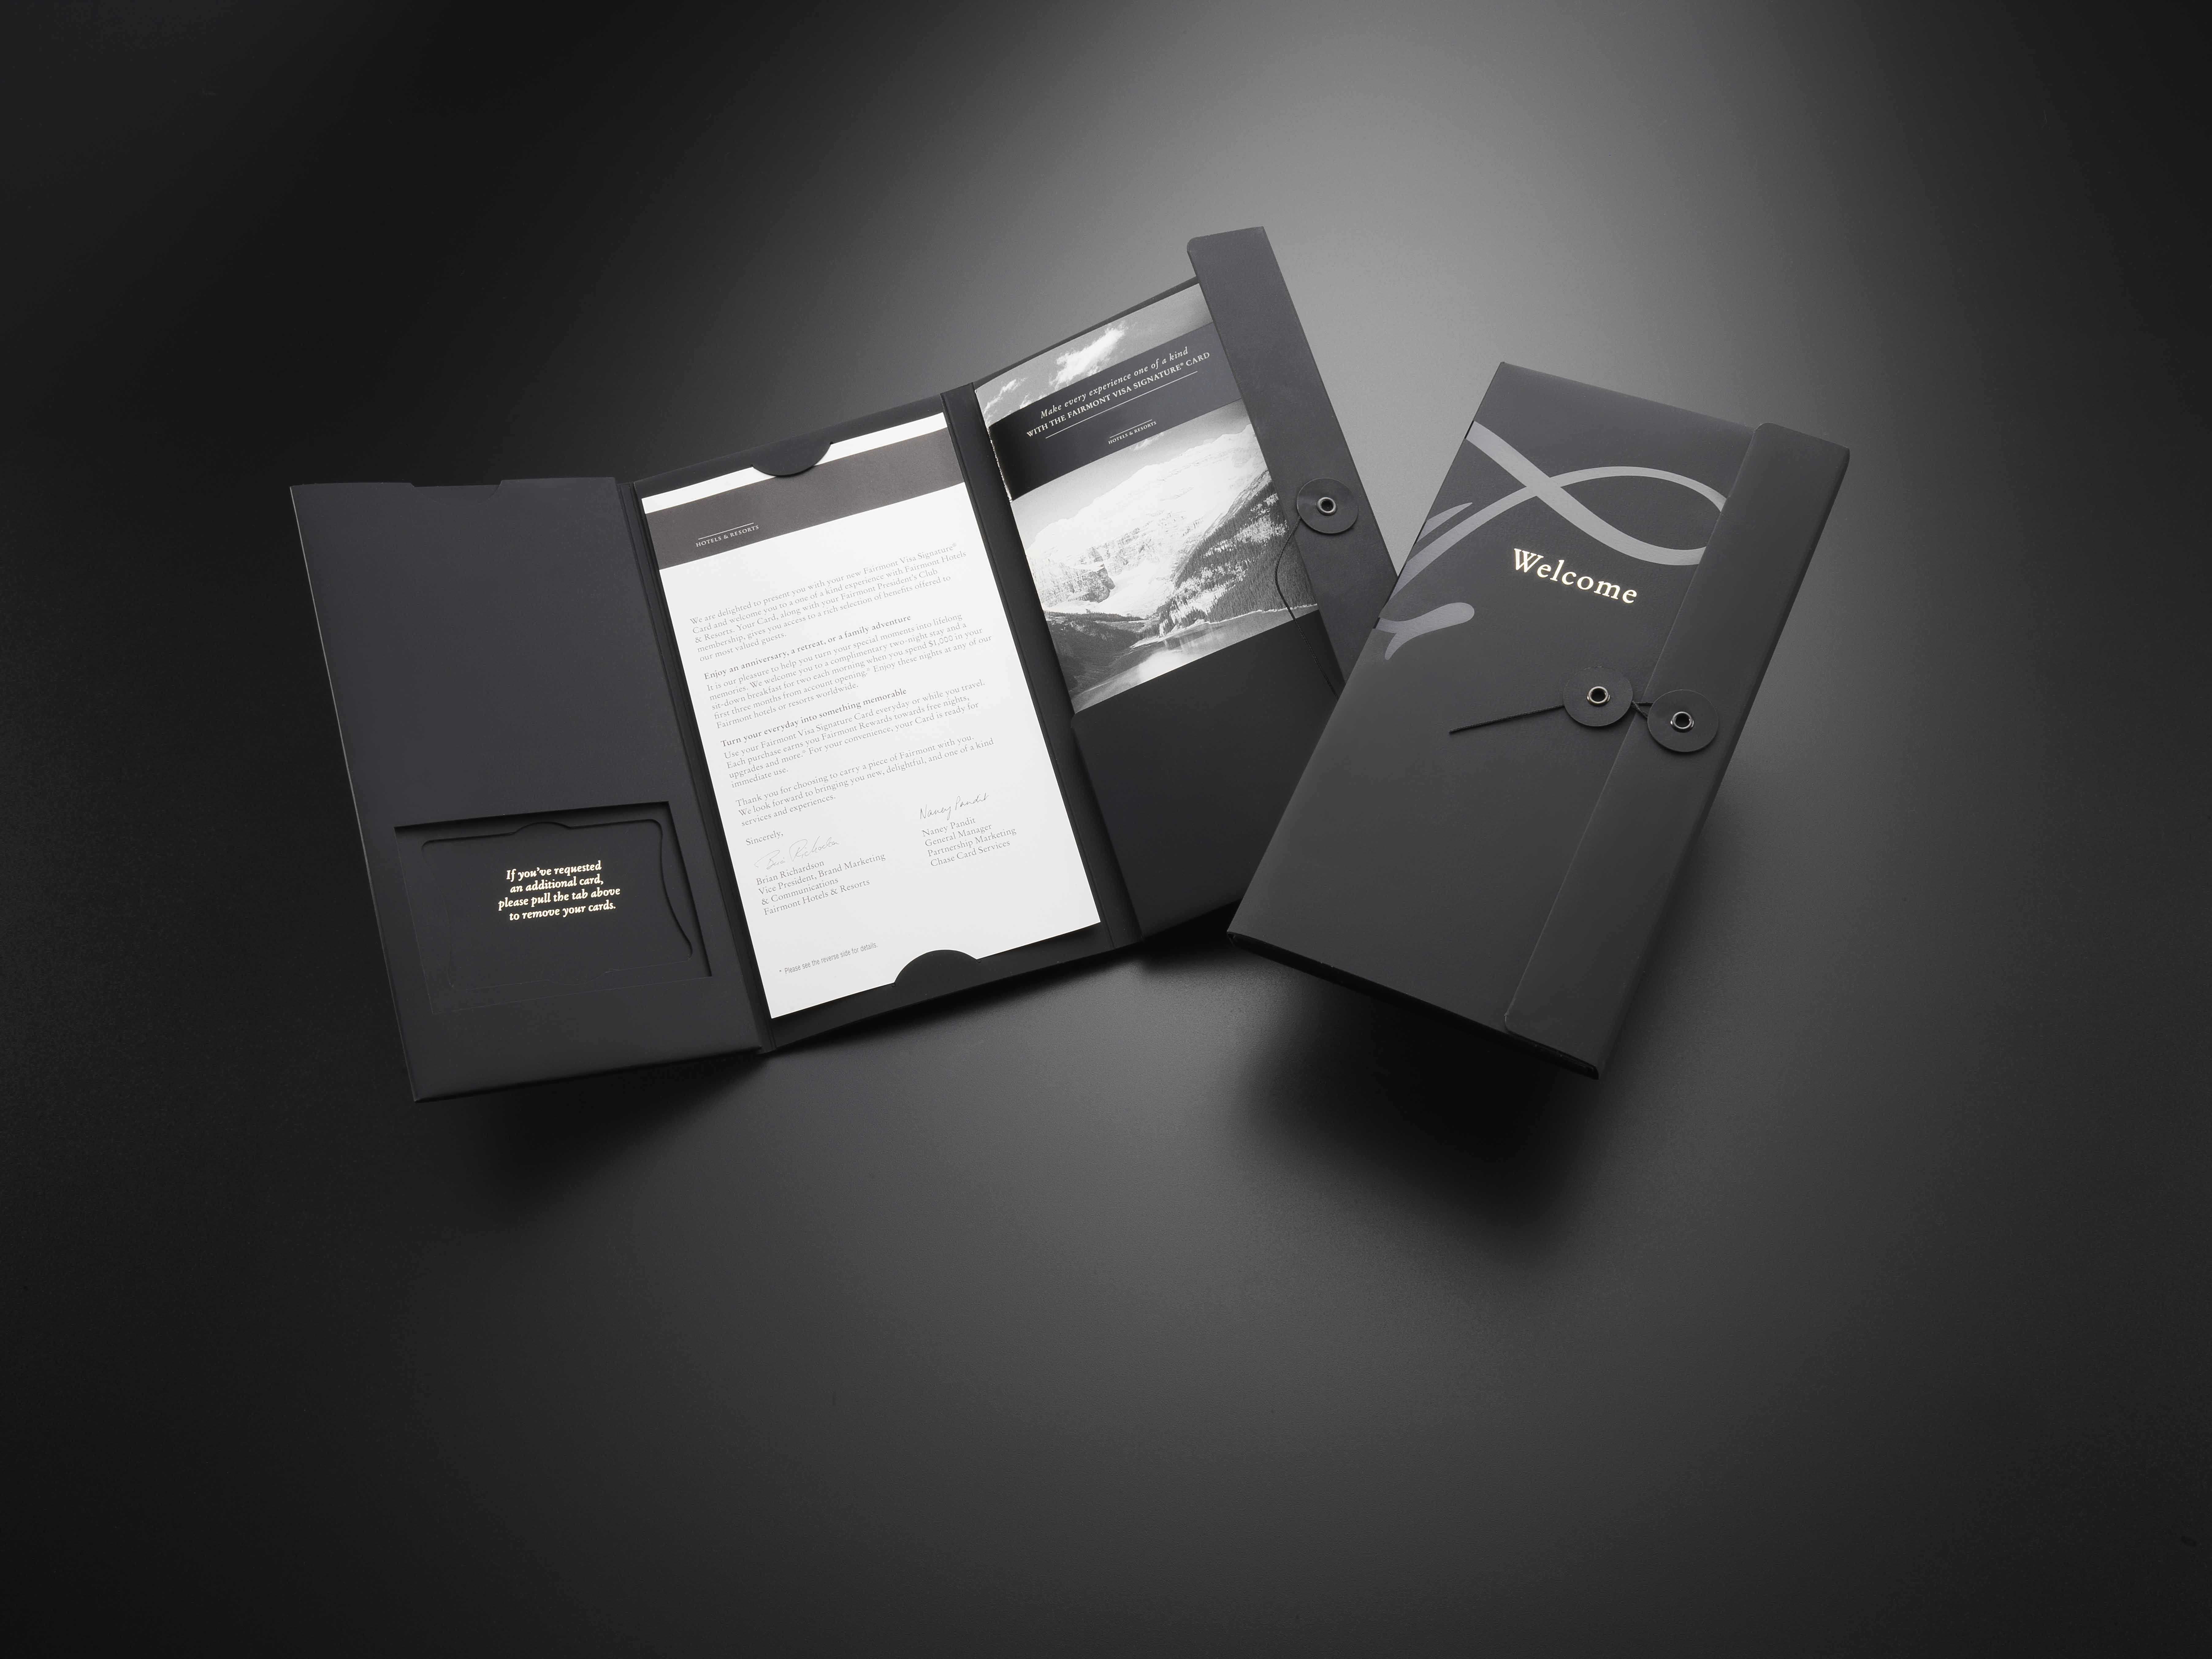 Luxury Welcome Kit With Sof Ttouch And Spot Gloss Varnish Efftct Mailer Design Luxury Brochure Vip Card